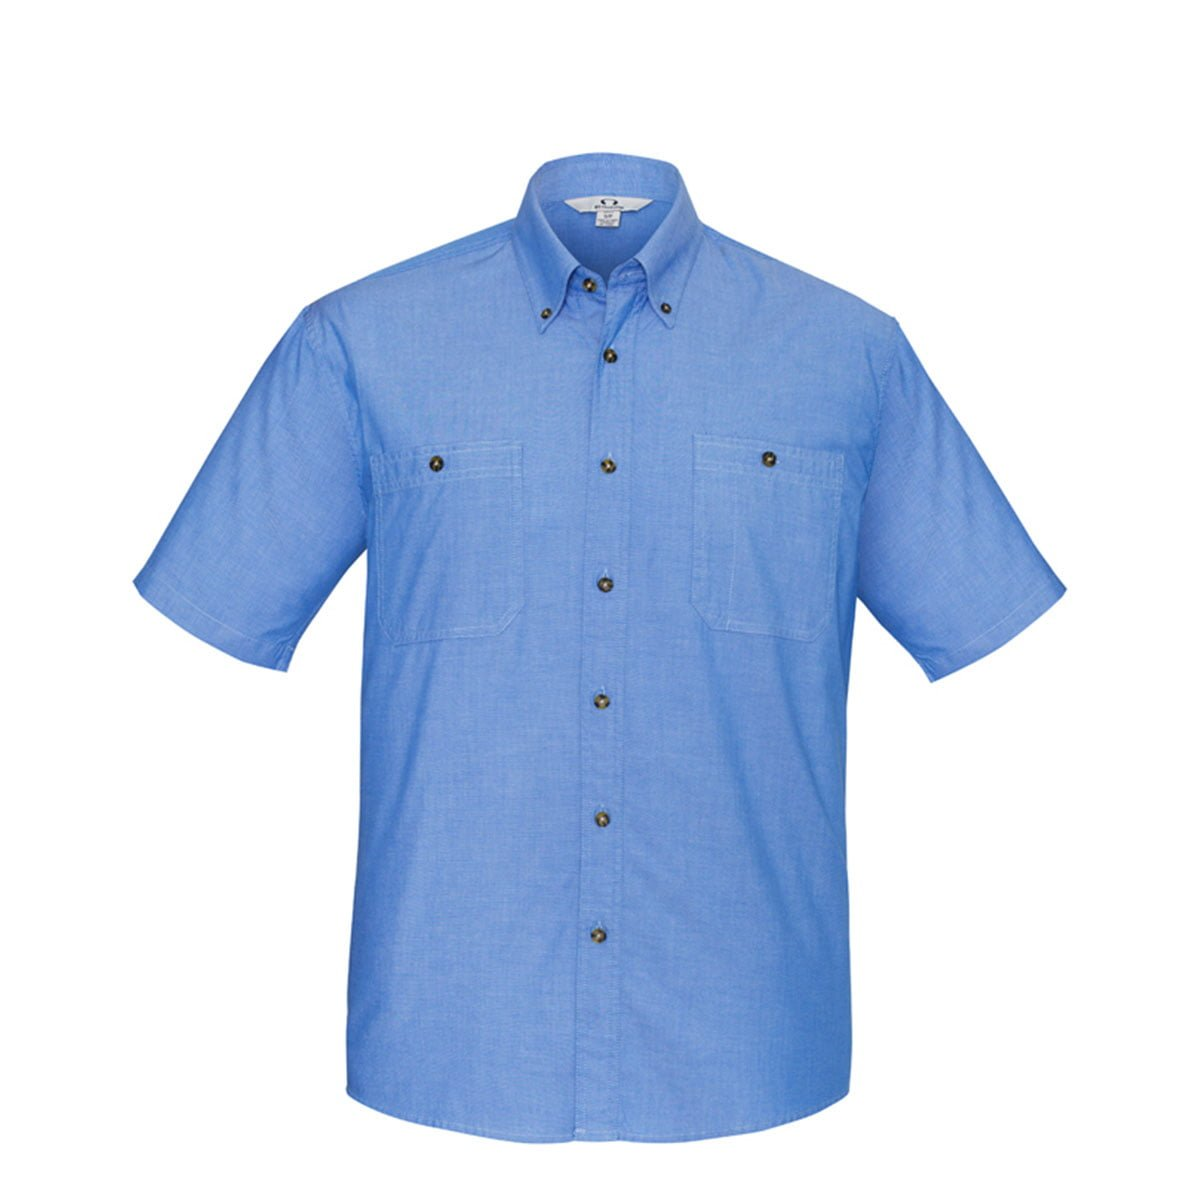 Mens Wrinkle Free Chambray Short Sleeve Shirt-Chambray